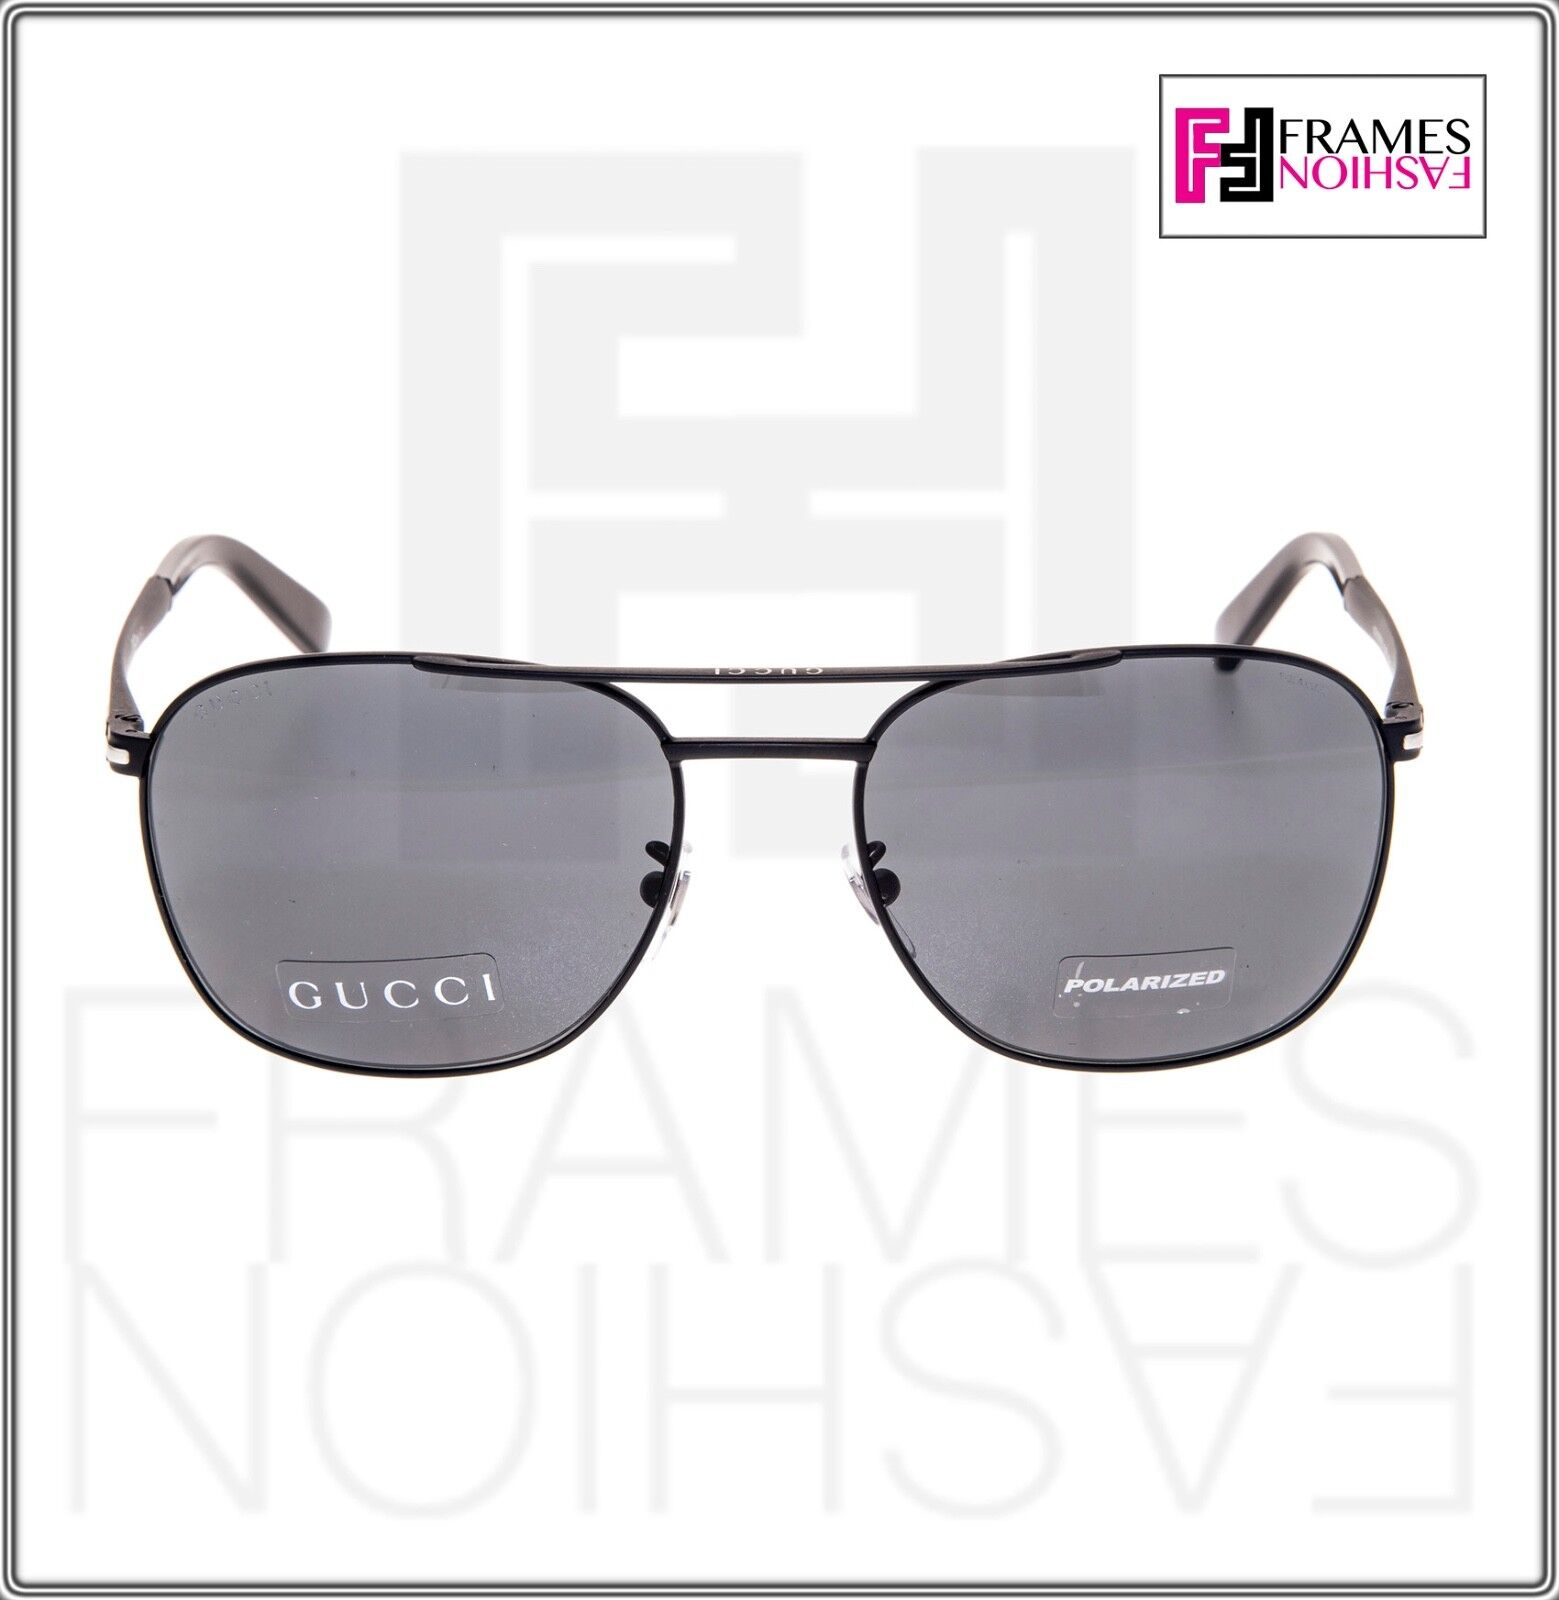 fc508bbd59 Gucci Square Gg2270fs Matte Black Steel Polarized Sunglasses Special Fit  2270 for sale online